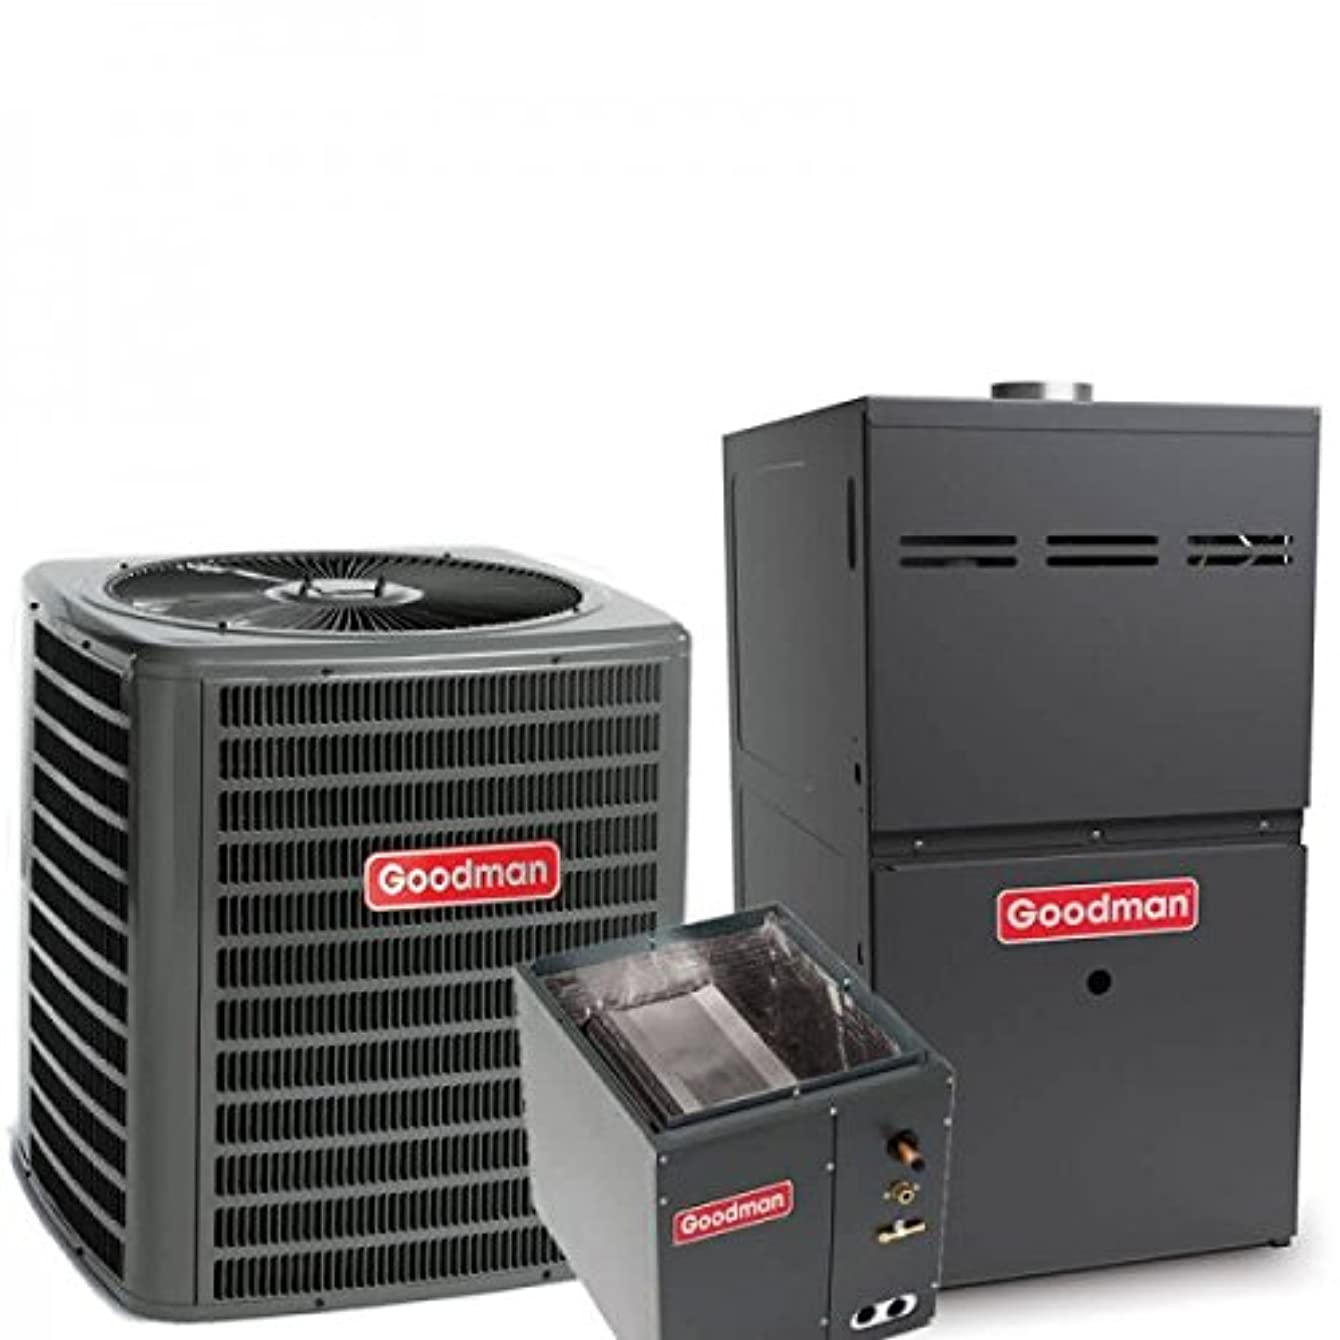 3 Ton Goodman 14 SEER R410A 80% AFUE 80,000 BTU Upflow Gas Furnace Split System (Yes, please add one to my order)